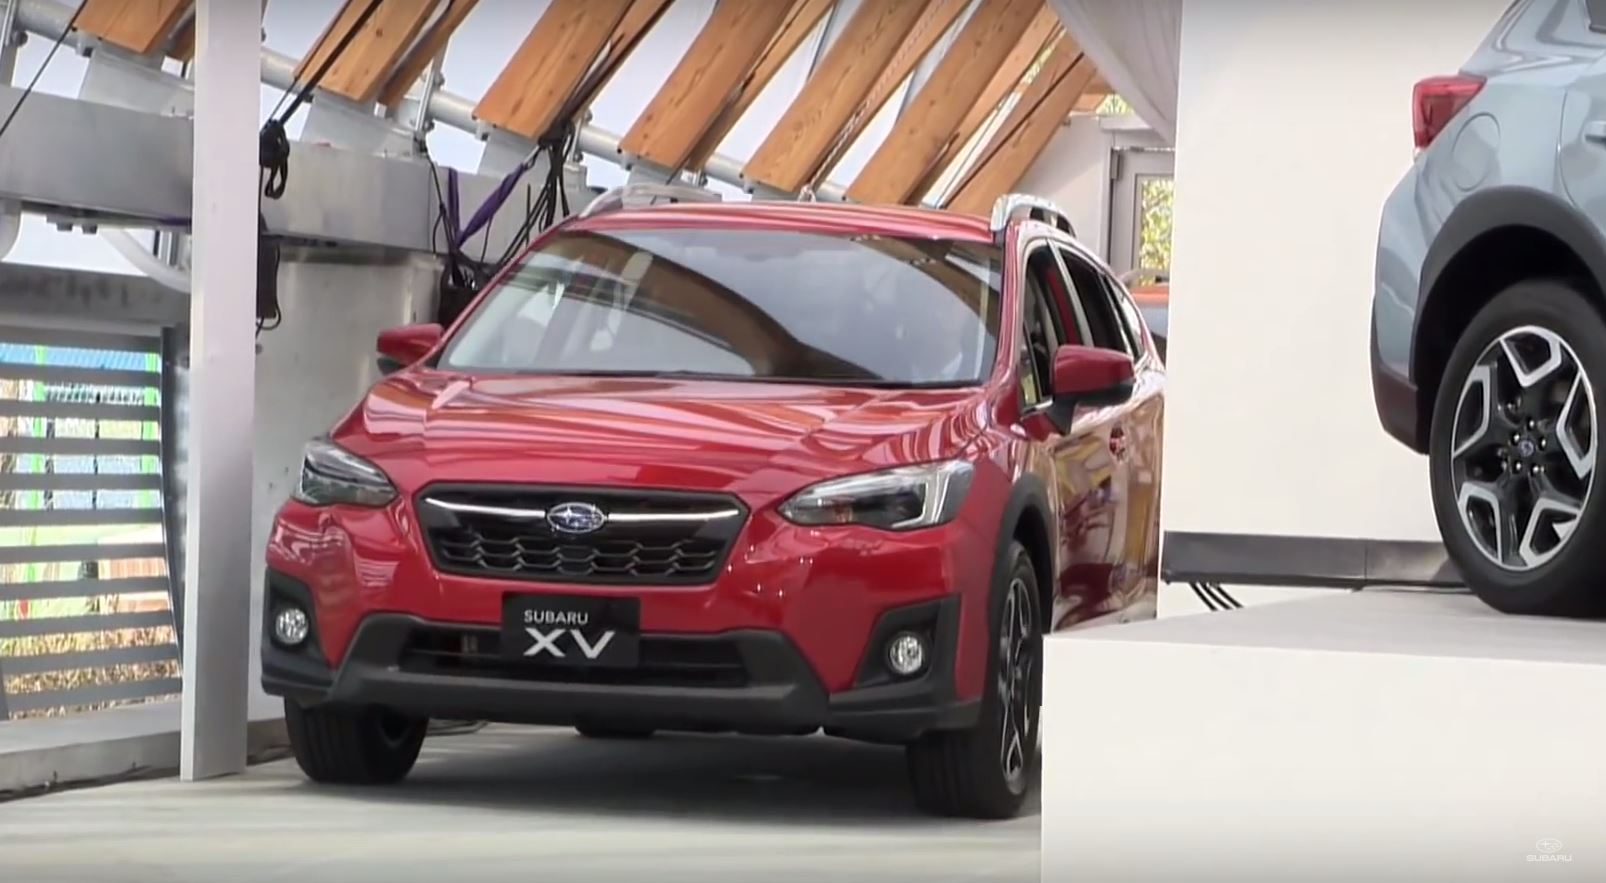 2018 Subaru XV Launched in Japan With 1.6-liter 115 HP ...